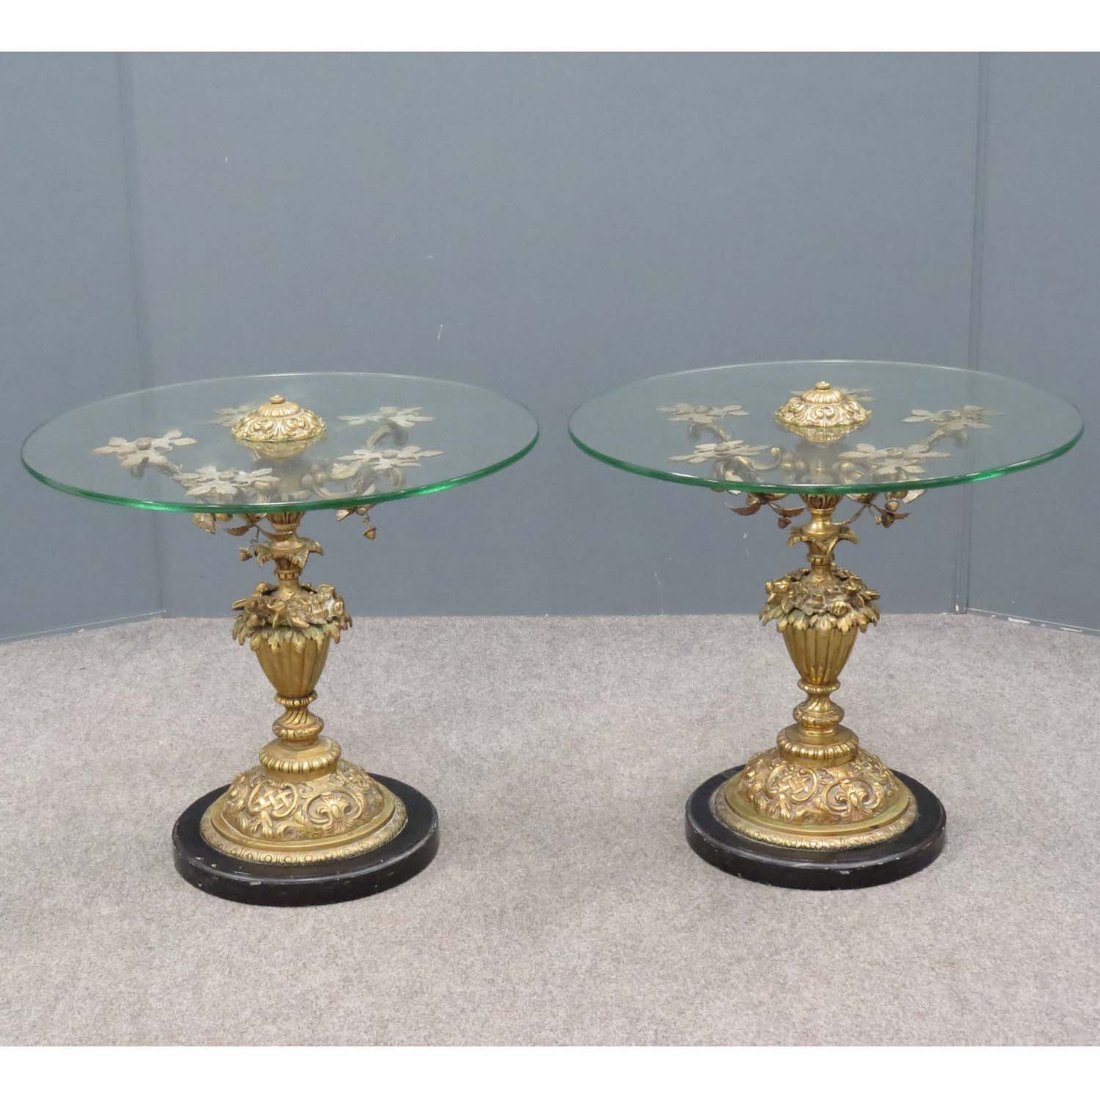 PAIR FRENCH STYLE BRASS AND MARBLE BASED STANDS